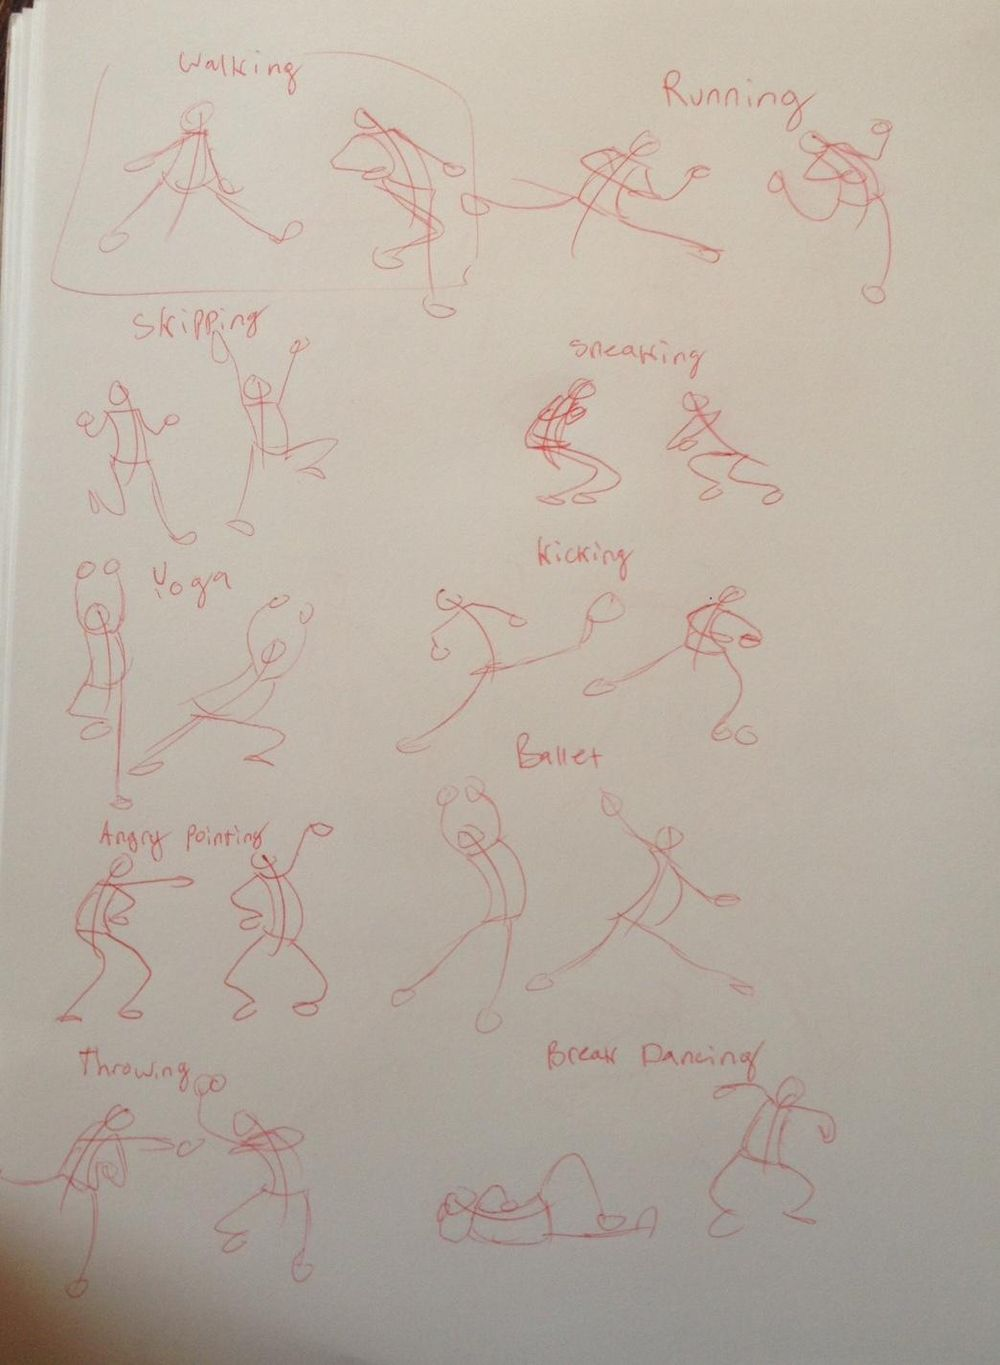 Stick Figure drawings - image 2 - student project